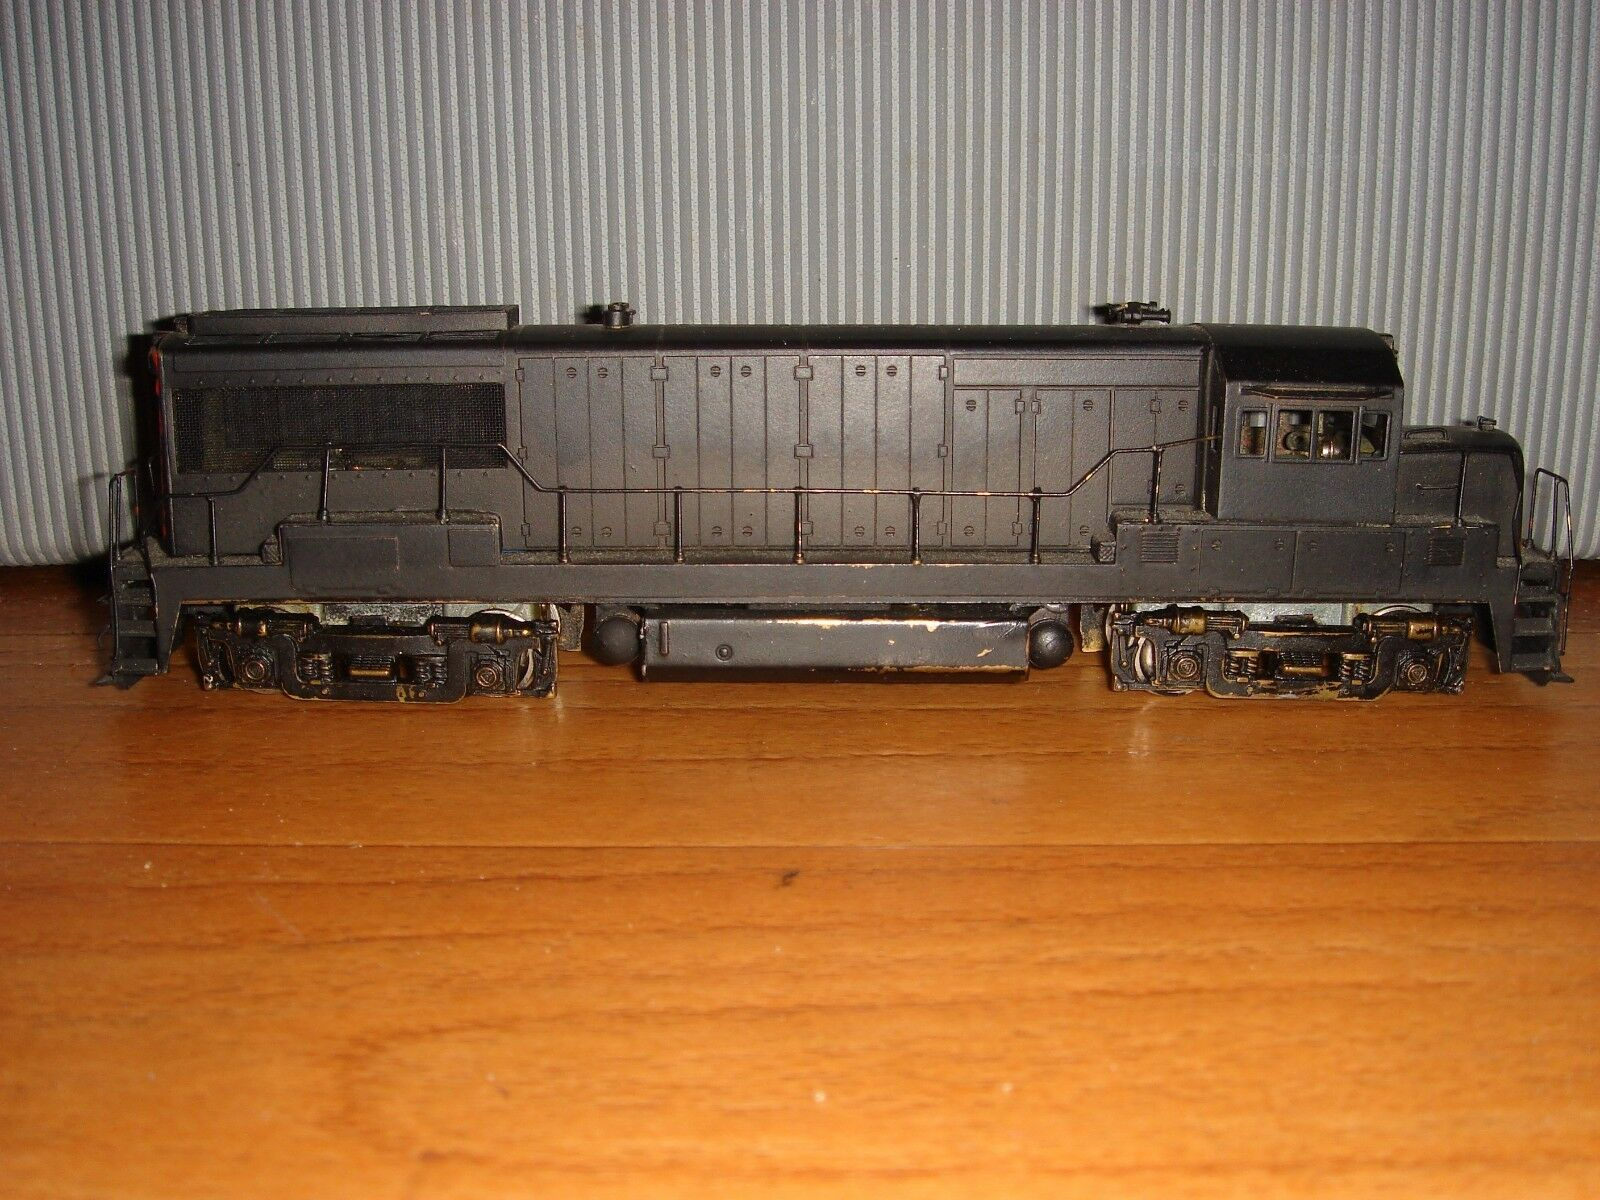 Model von 1969, ALCO ® Lokomotive H0 D-113 PENNSYLVANIA GE U-25B Messing Allrad